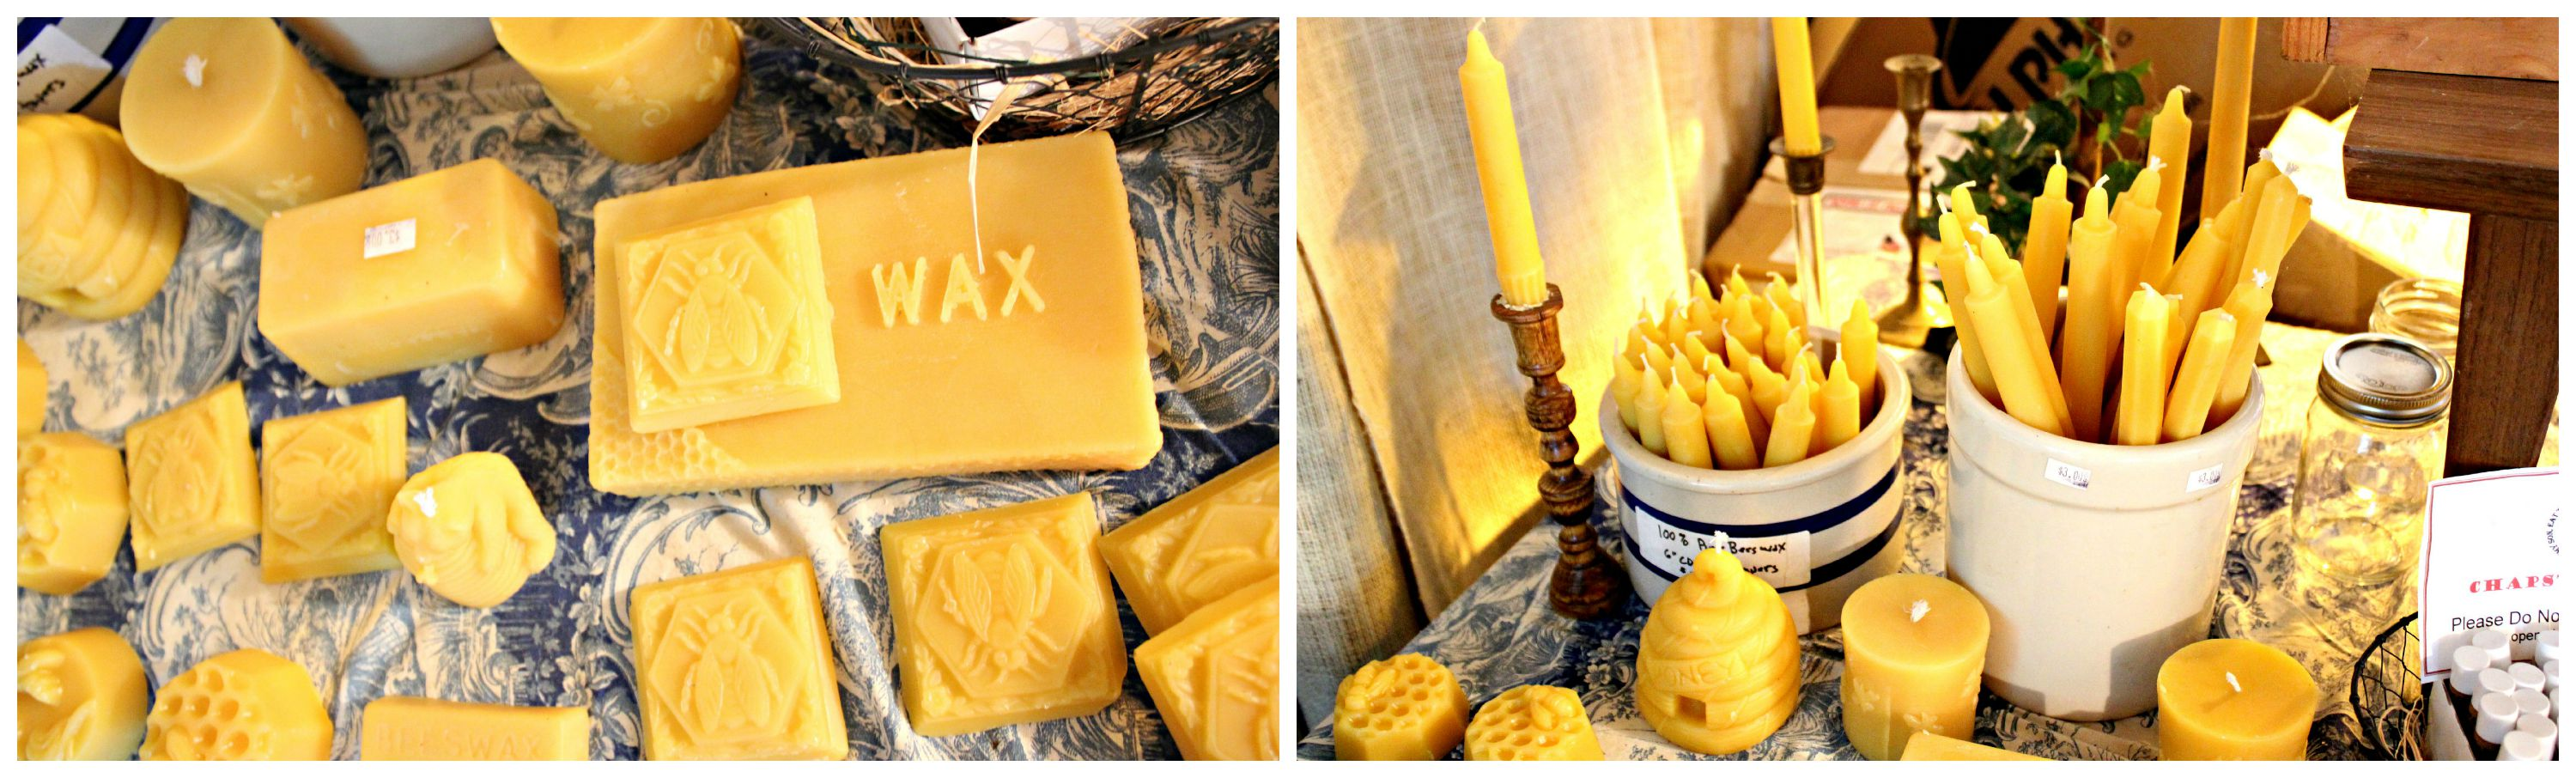 wax-and-candles